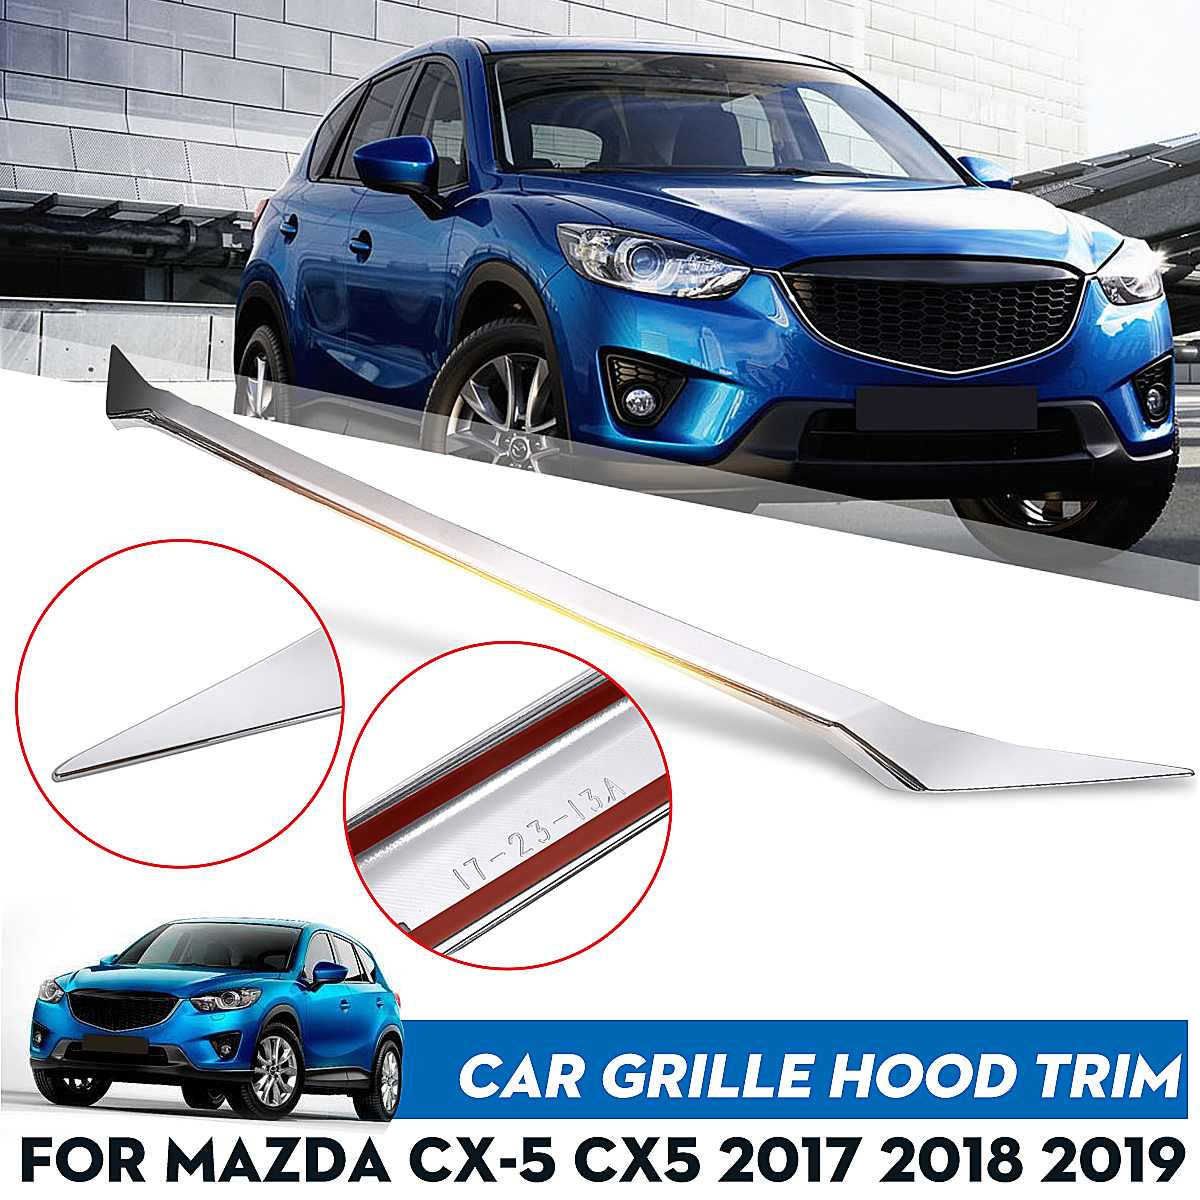 ABS Front Grille Grill Engine Hood Bonnet Cover Chrome Trim Sticker Decoration <font><b>Accessories</b></font> For <font><b>Mazda</b></font> CX-5 <font><b>CX5</b></font> 2017 2018 <font><b>2019</b></font> image